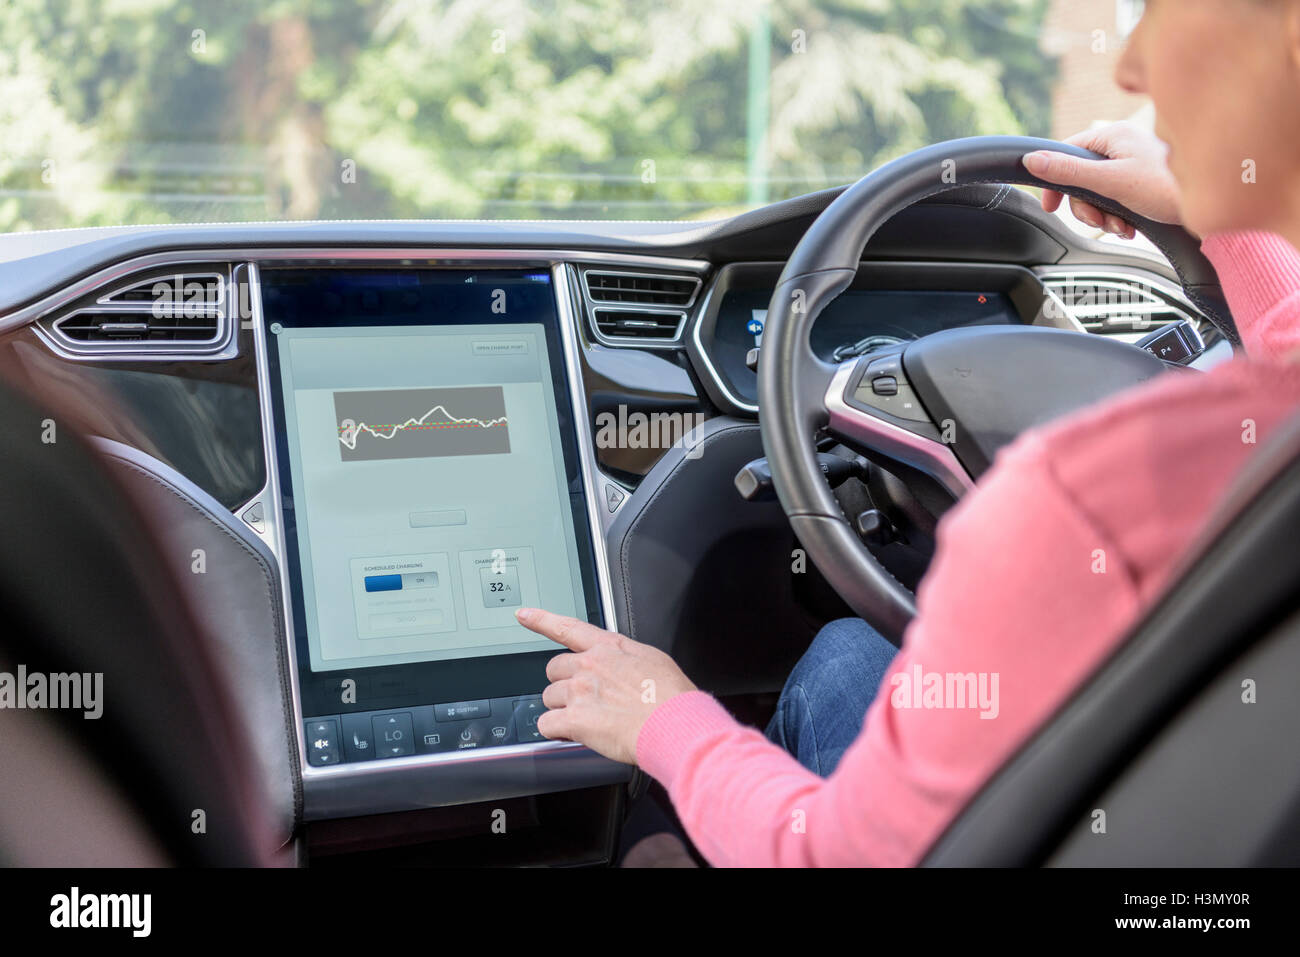 Woman using graphical display in electric car - Stock Image